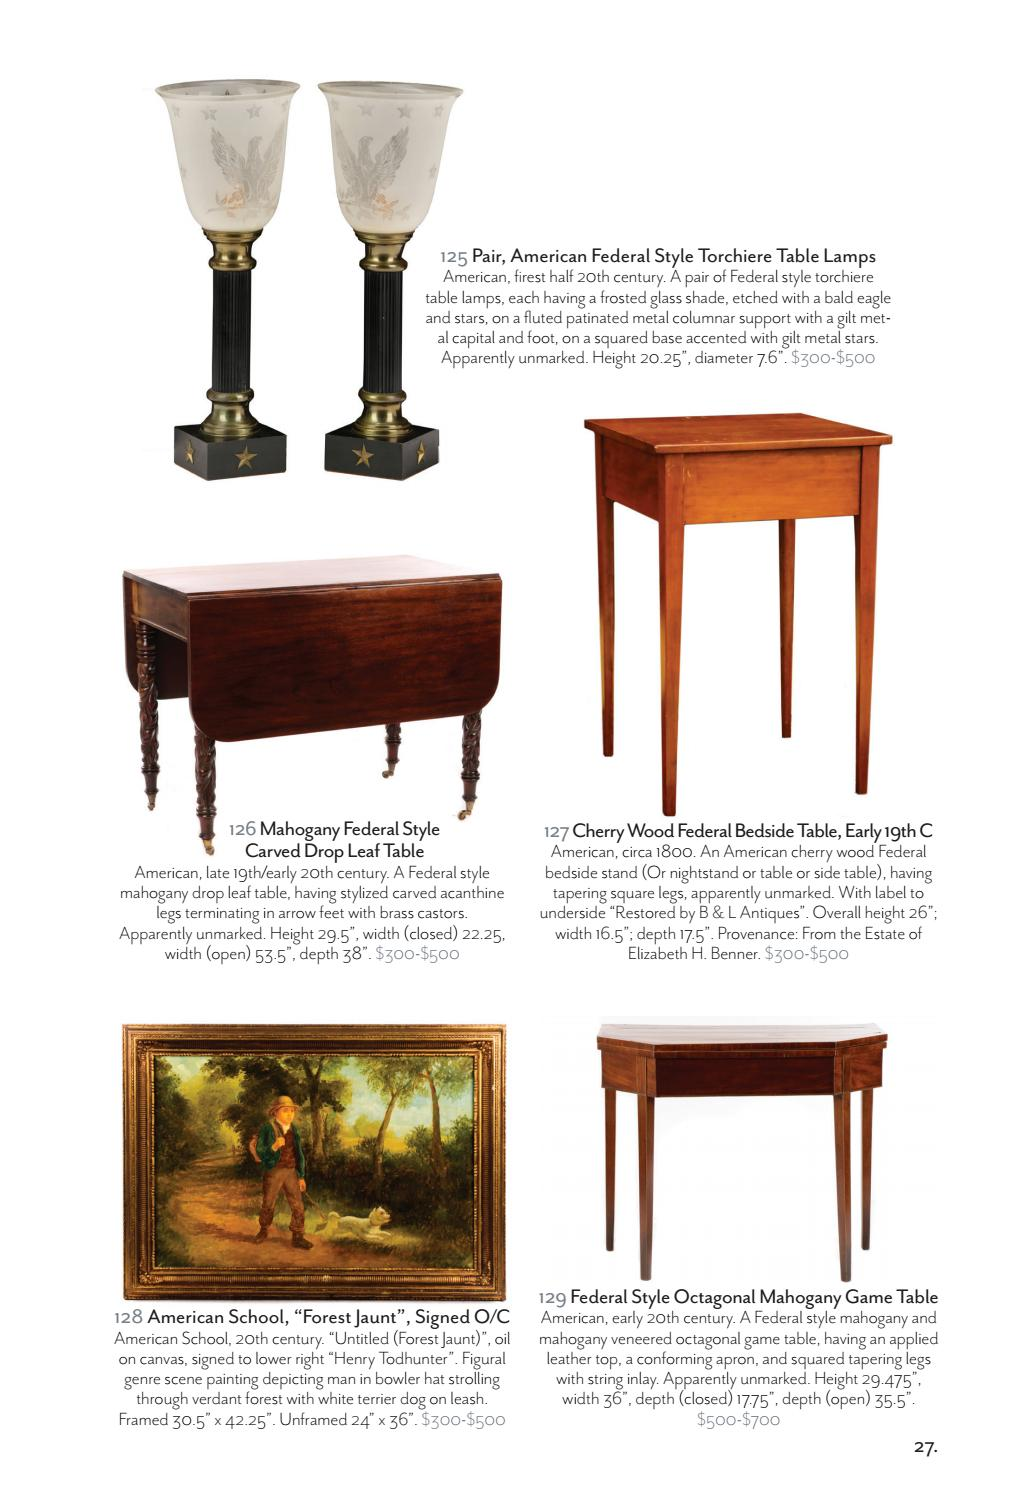 Sidetable Wit Met Glas.Ahlers Ogletree 2017 Spring Salon Auction Catalogue By